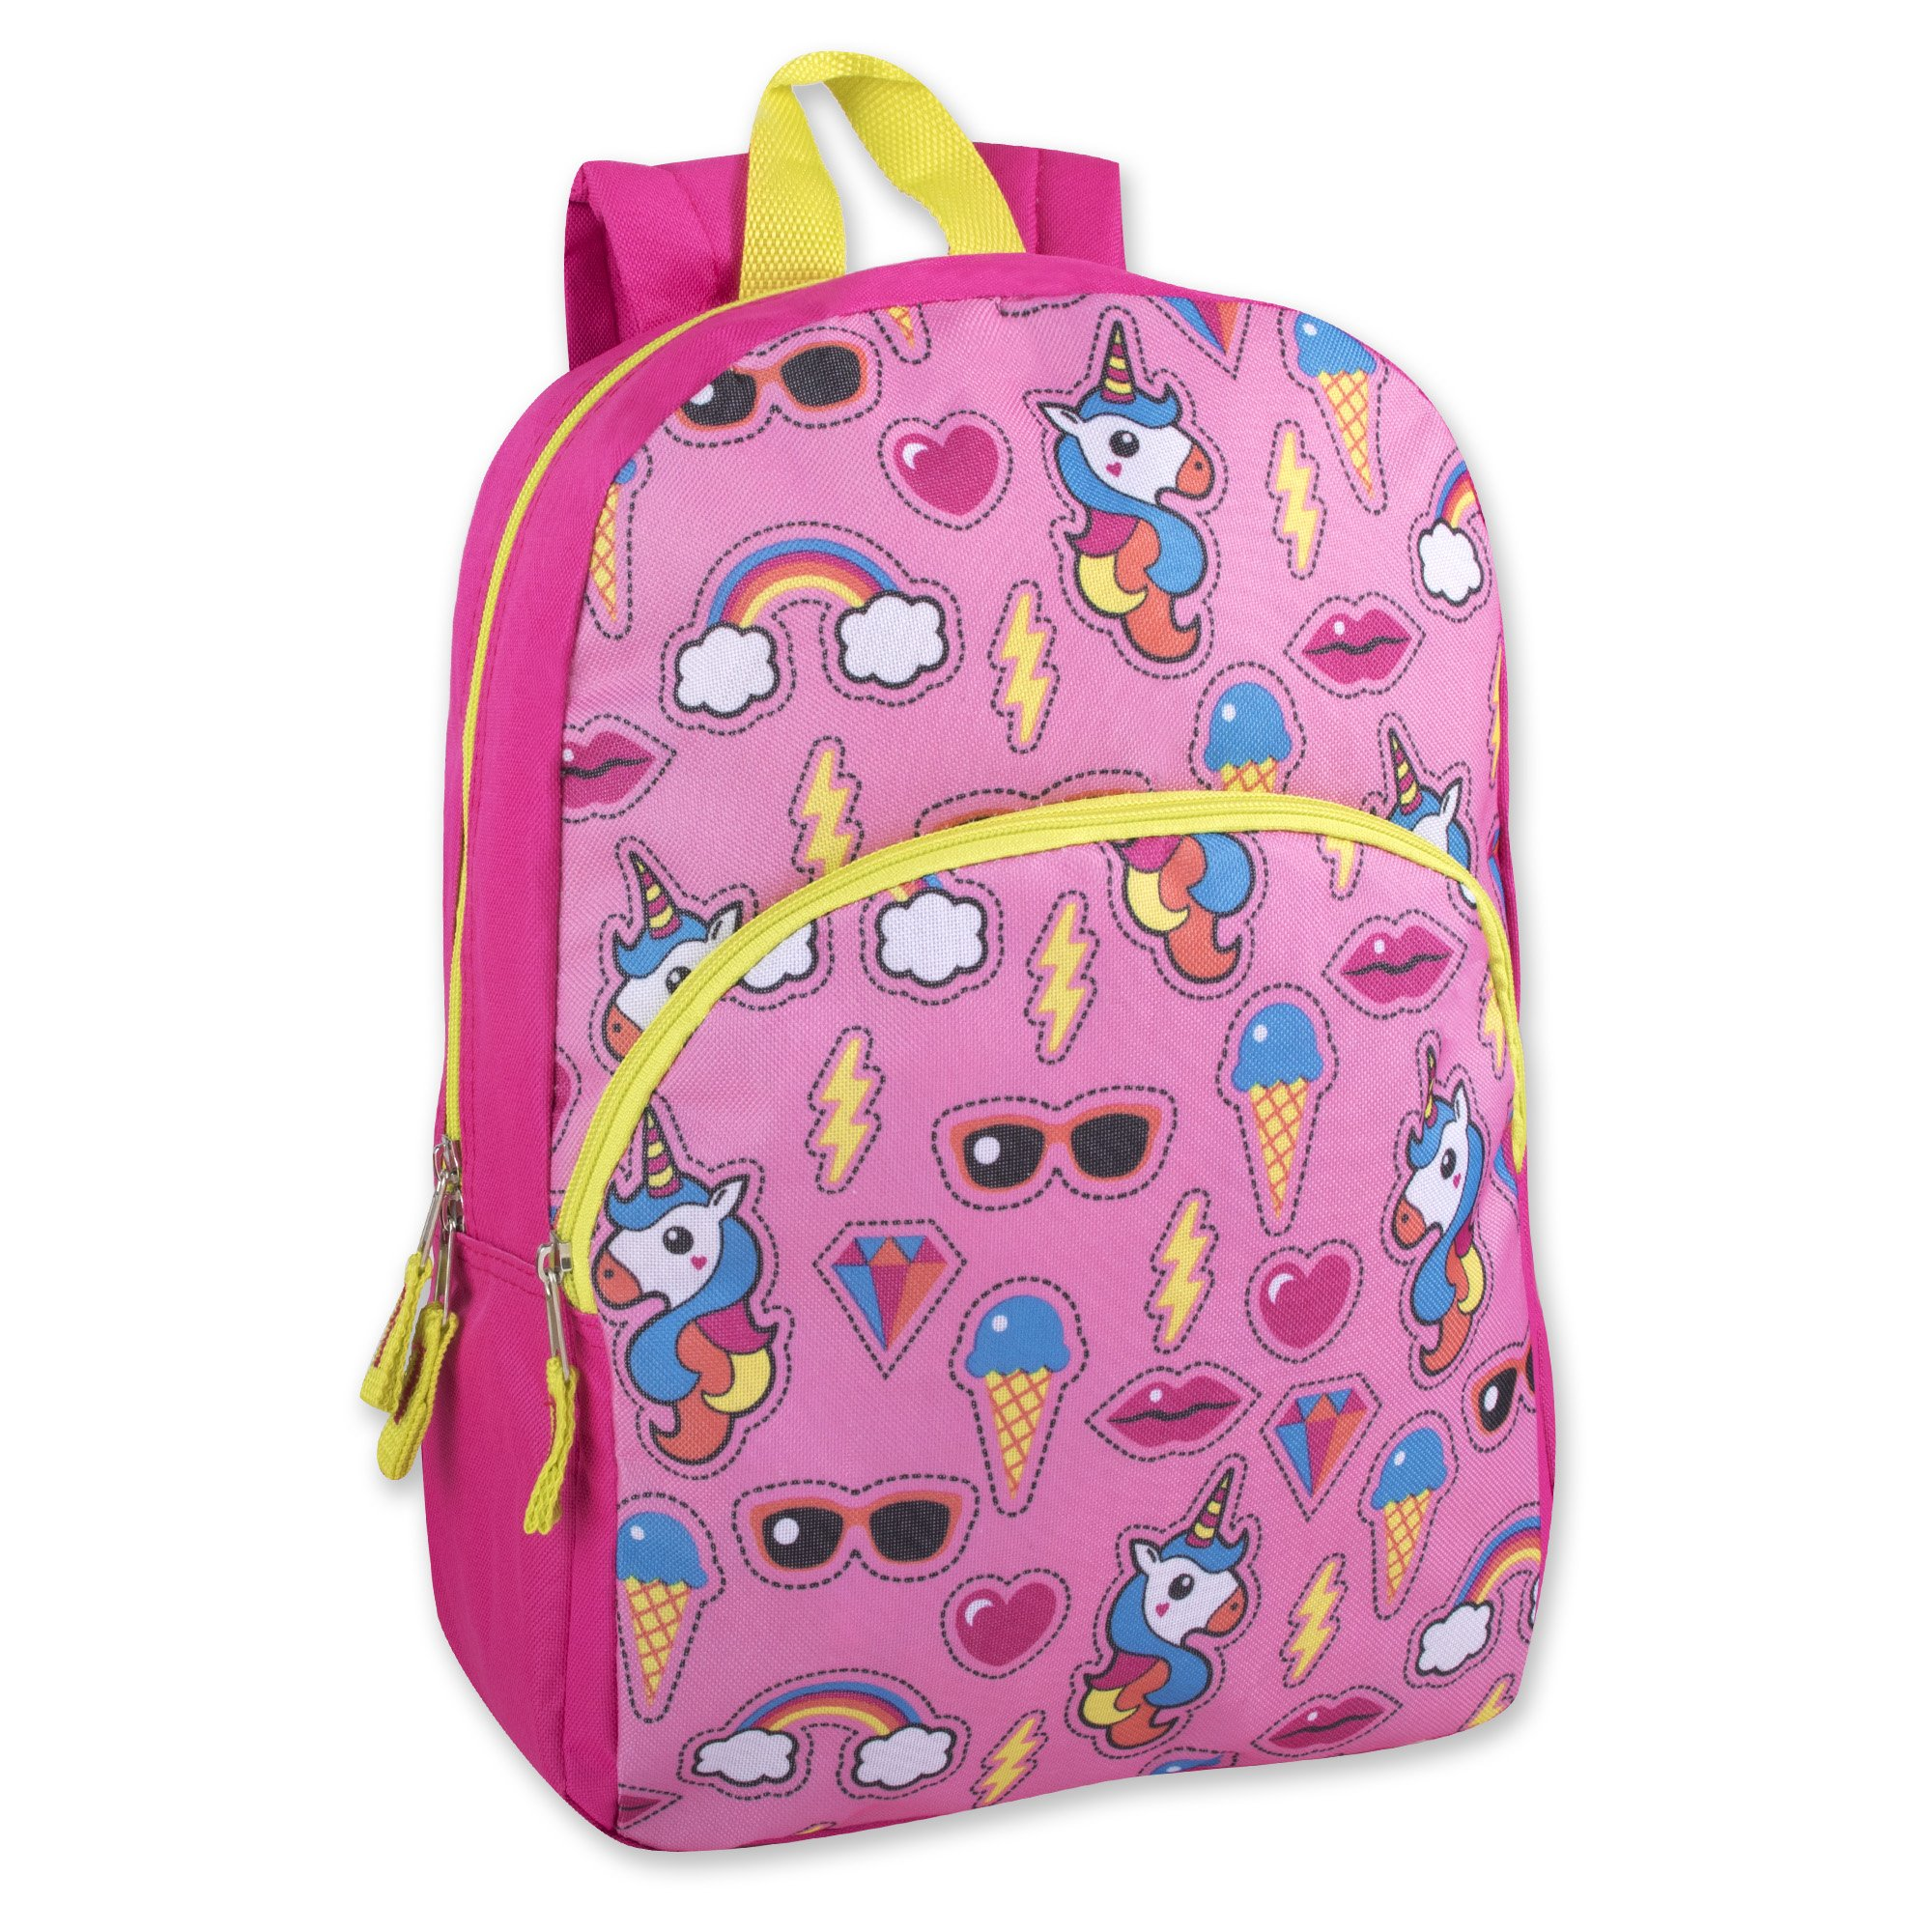 Trail maker Character Backpack (15'') with Fun Fashionable Design for Boys & Girls (Unicorn Adventure)